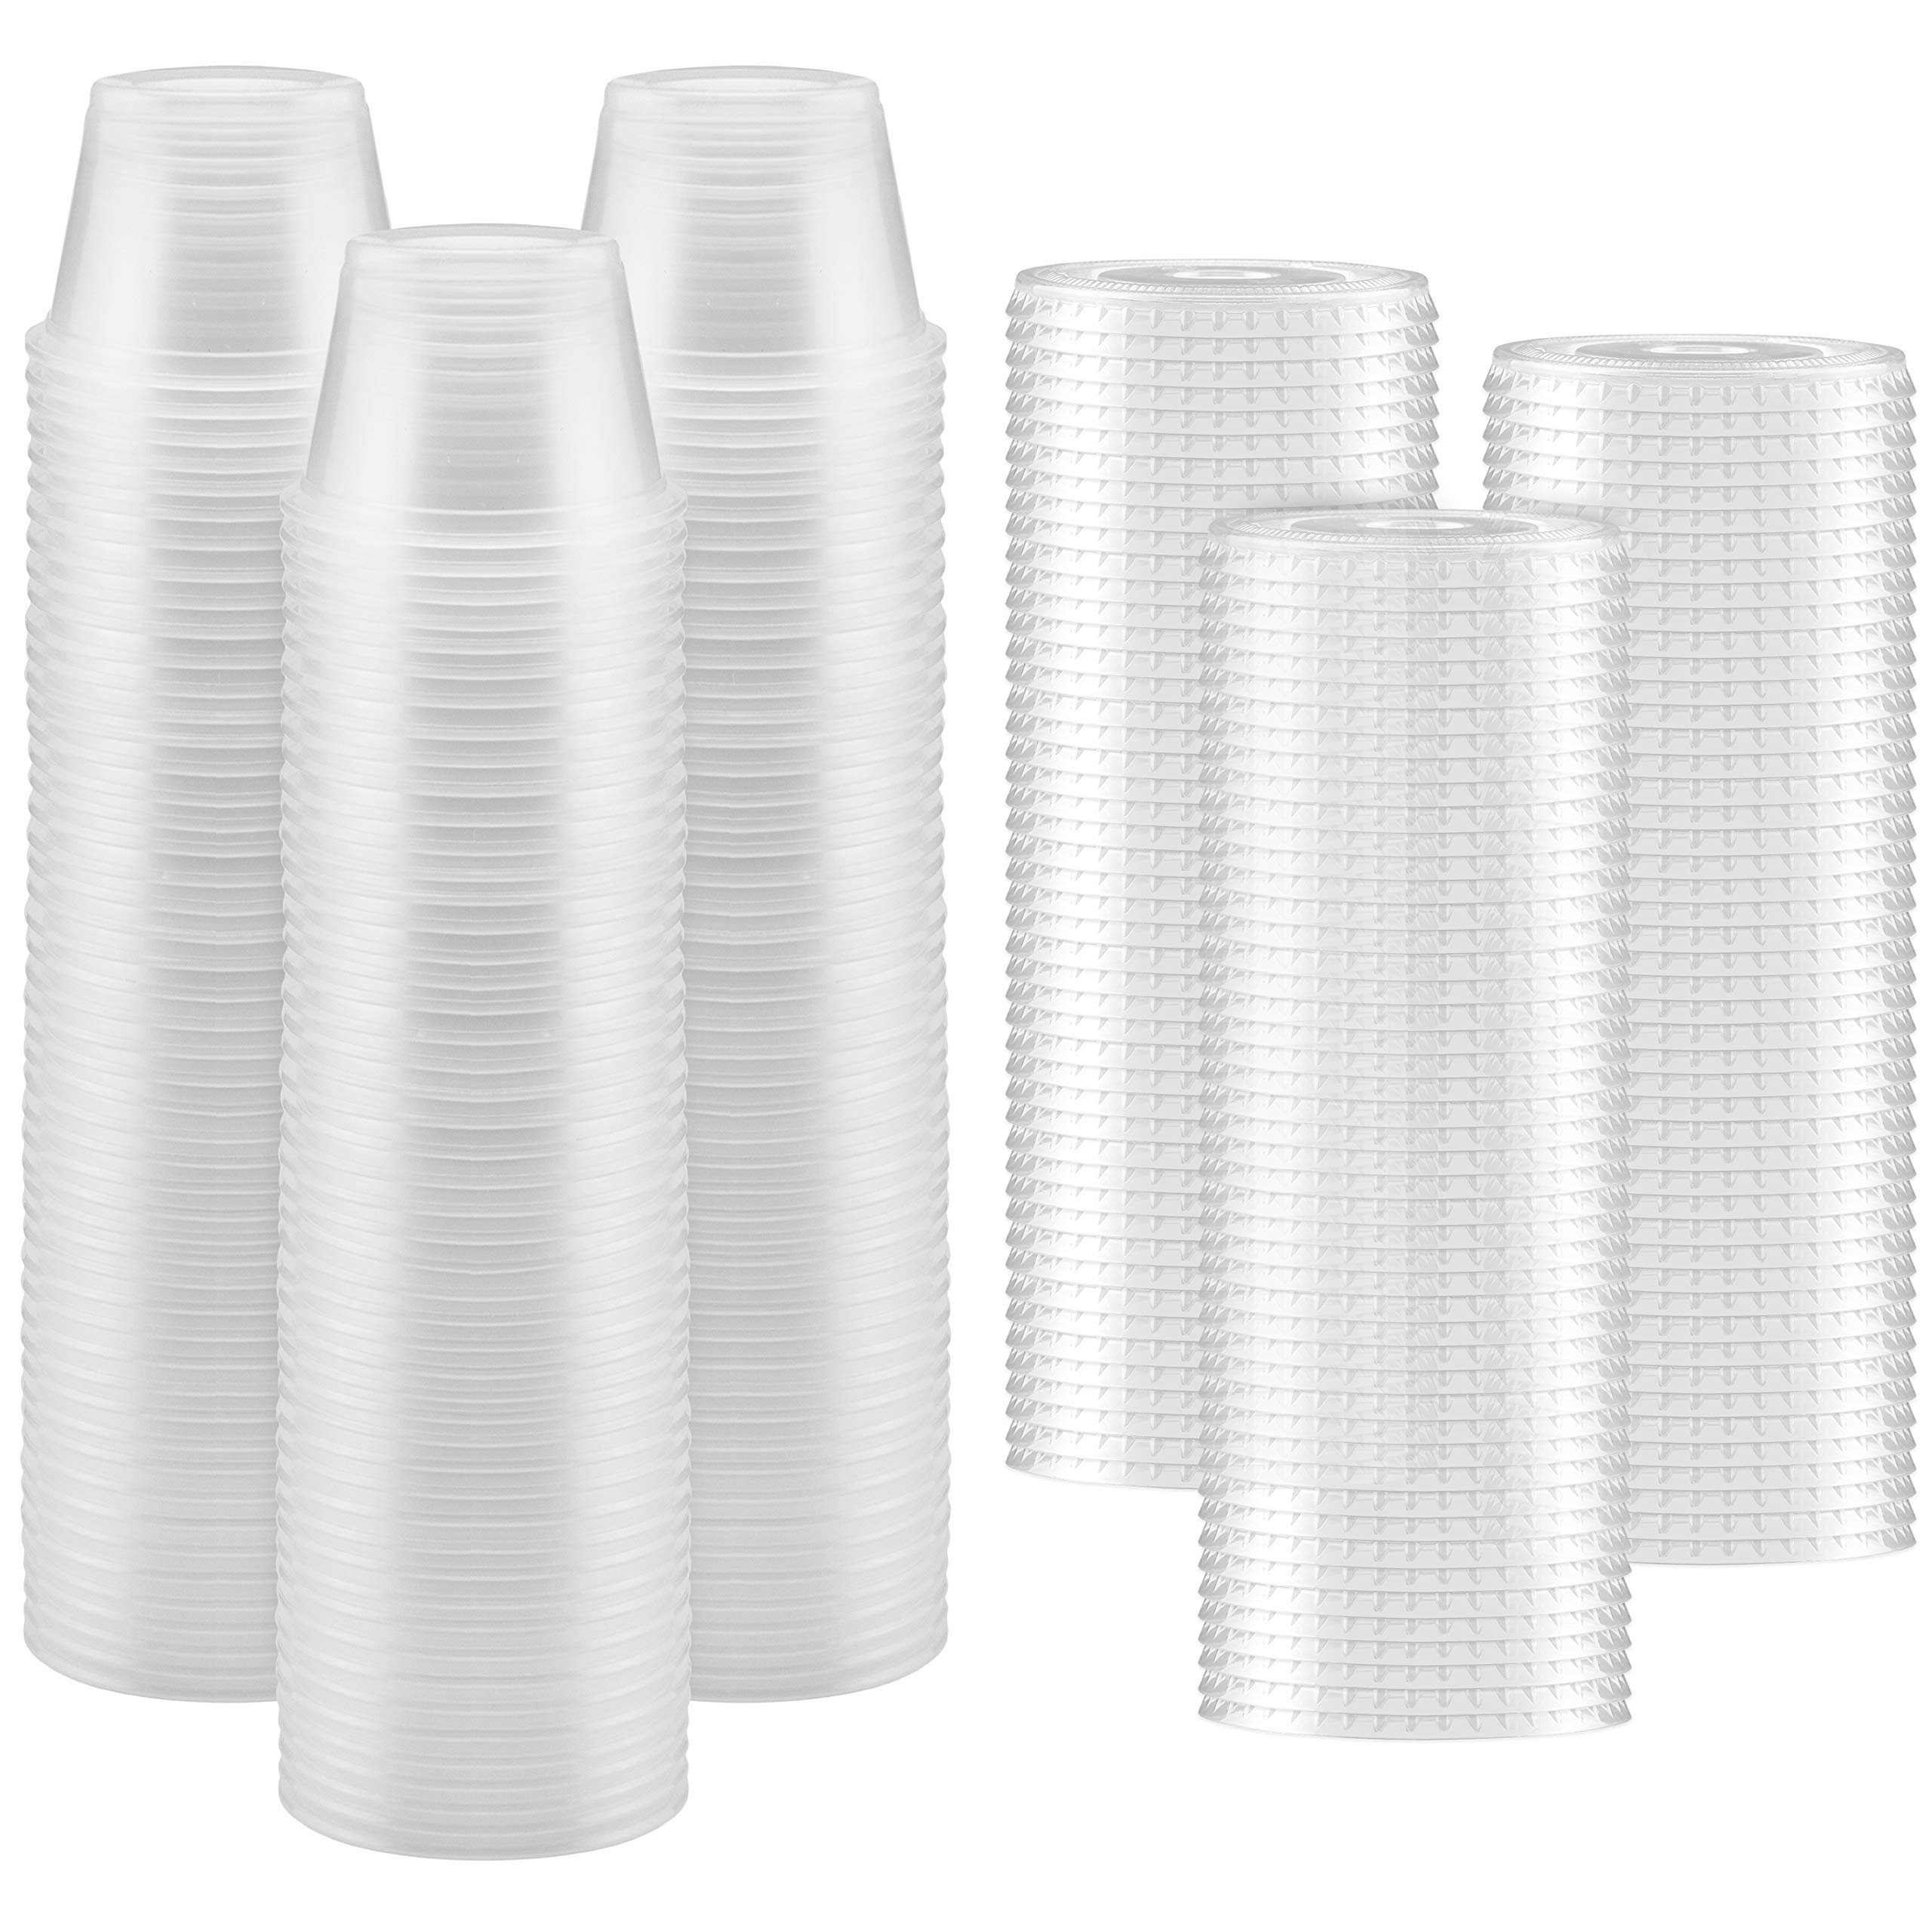 150-Pack of 4-oz Clear Plastic Jello Shot Cups Containers with Snap on Leak-Proof Lids -Small Shot Cups - Compact Food Storage Containers for Portion Control, Sauces, Spices, Liquid, Dips by NYHI